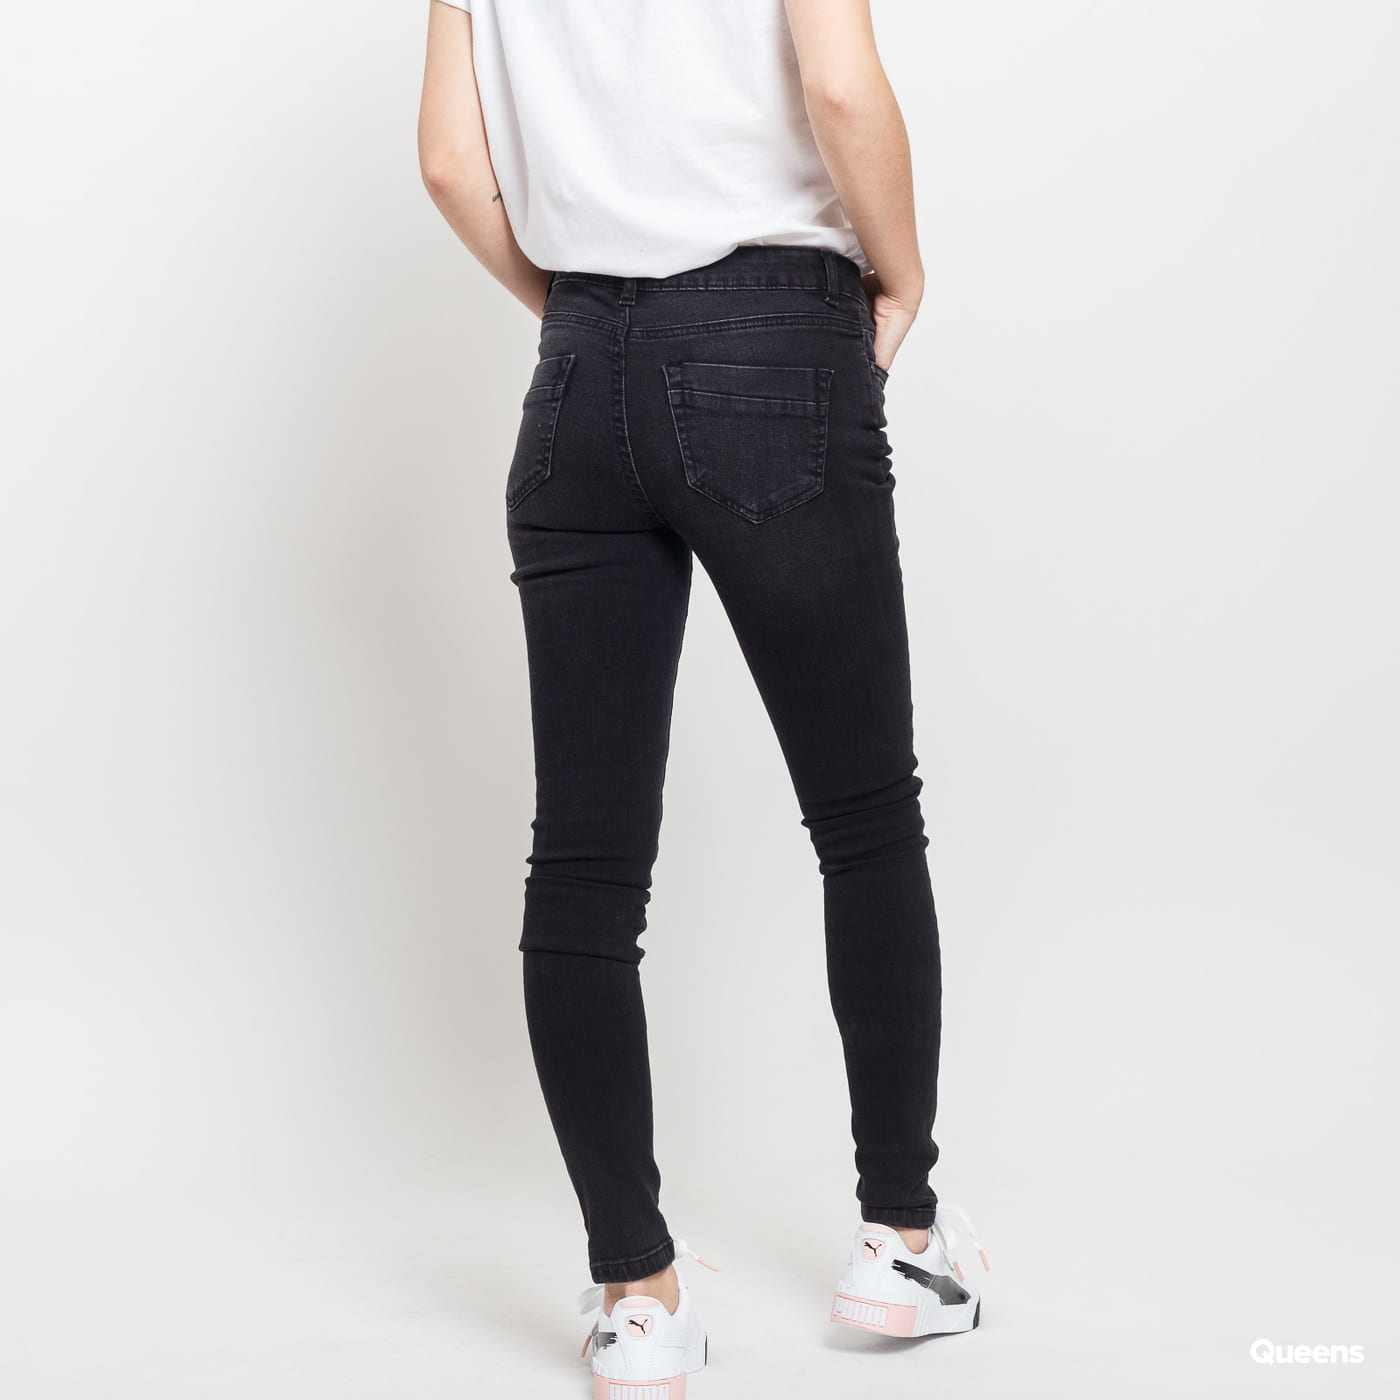 Urban Classics Ladies Ripped Denim Pants black washed